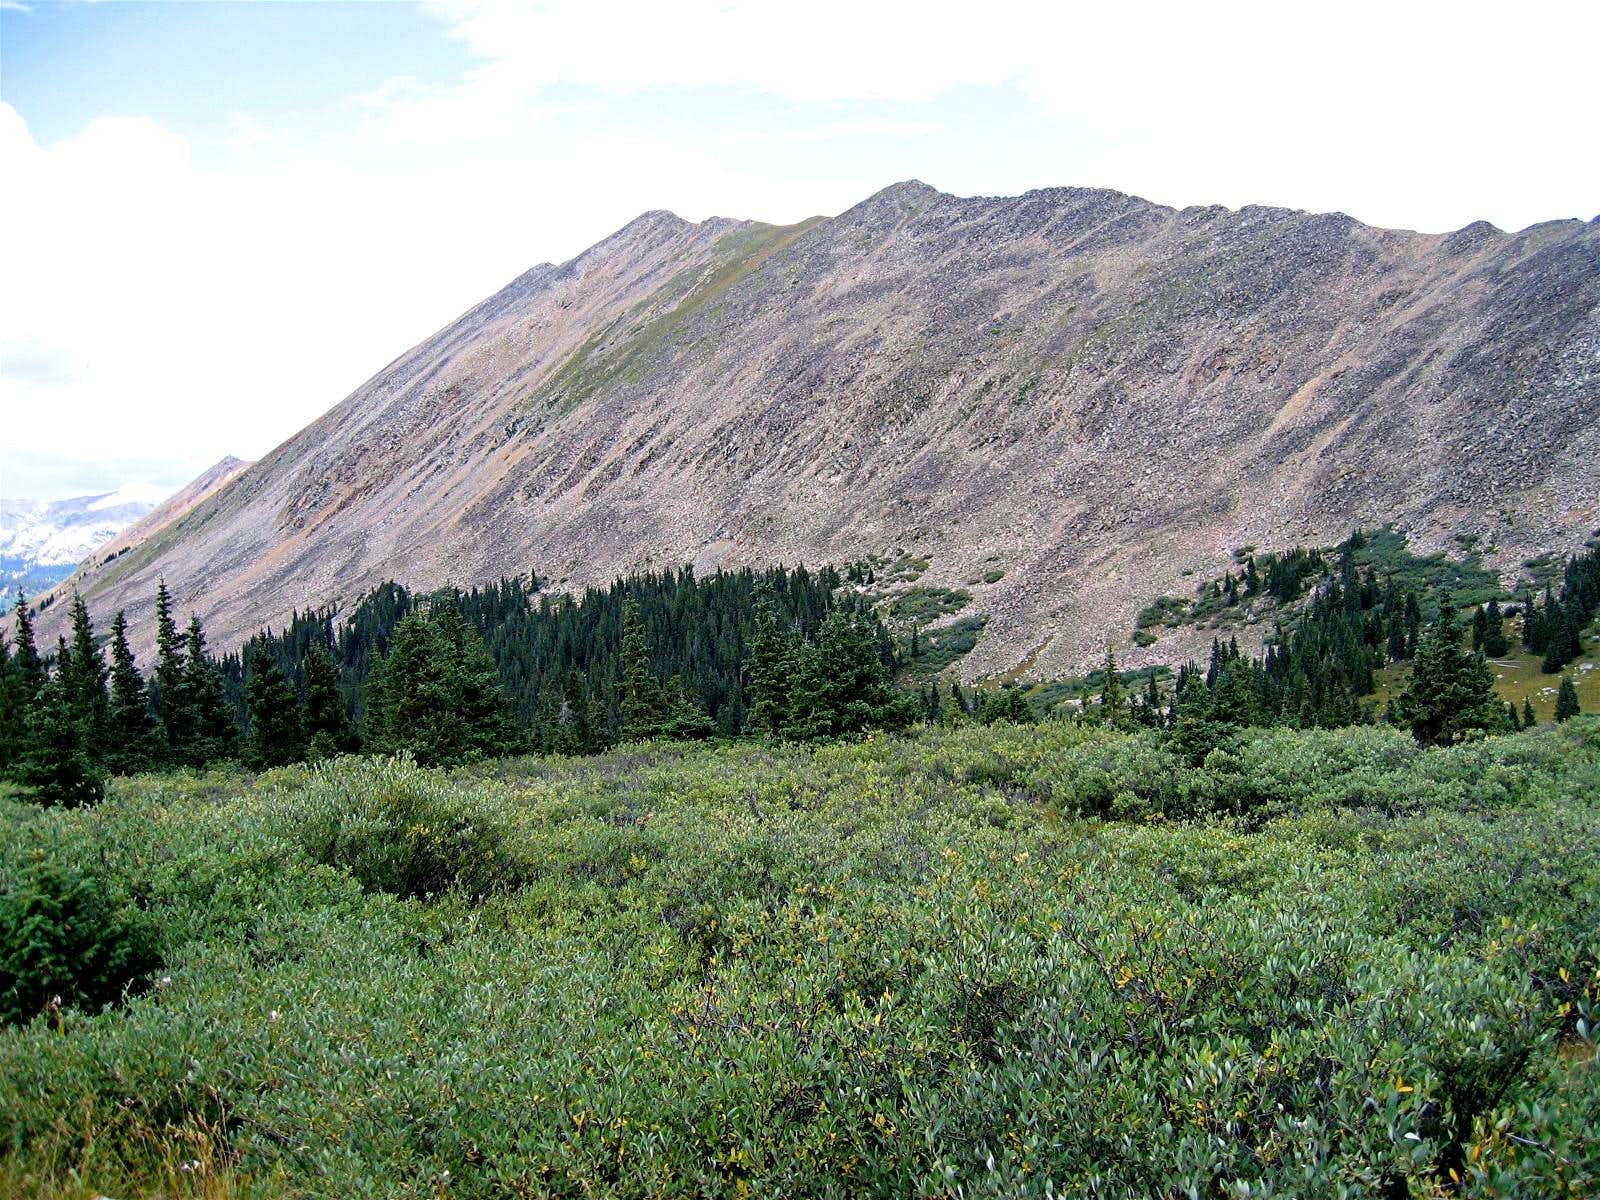 Chrysolite Mountain